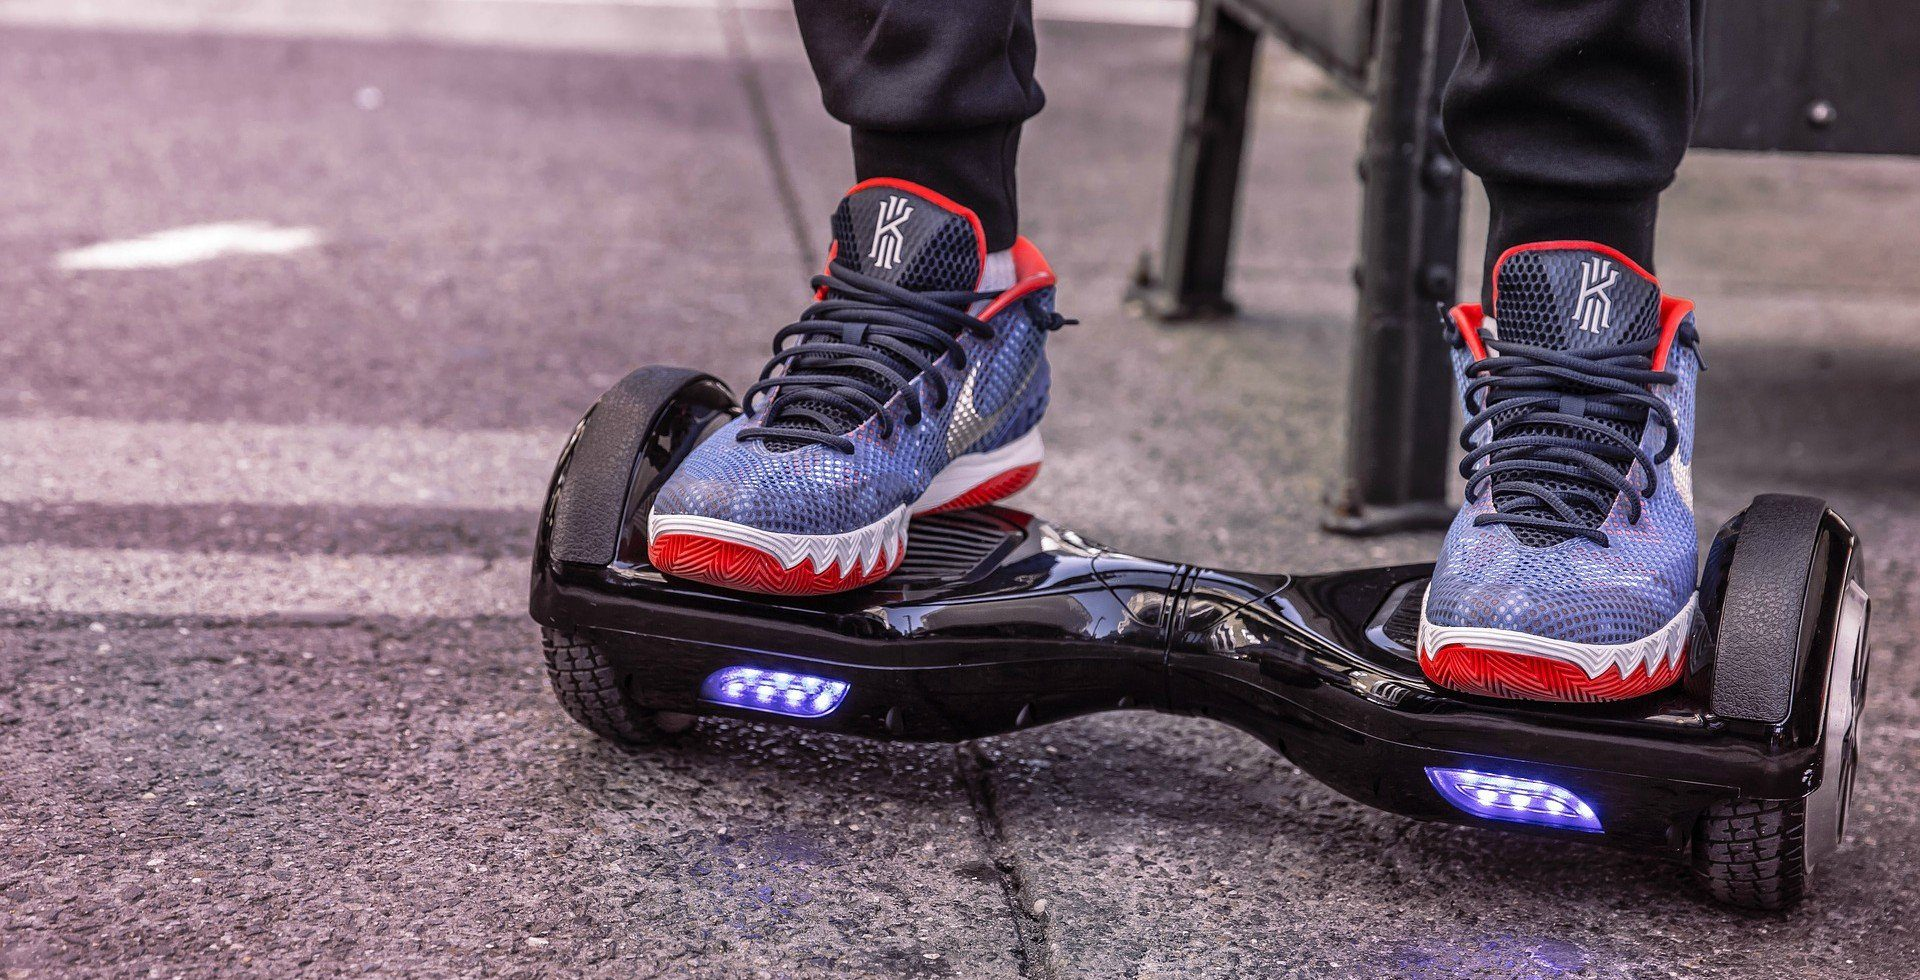 HOVERBOARDS AND ITS BENEFITS